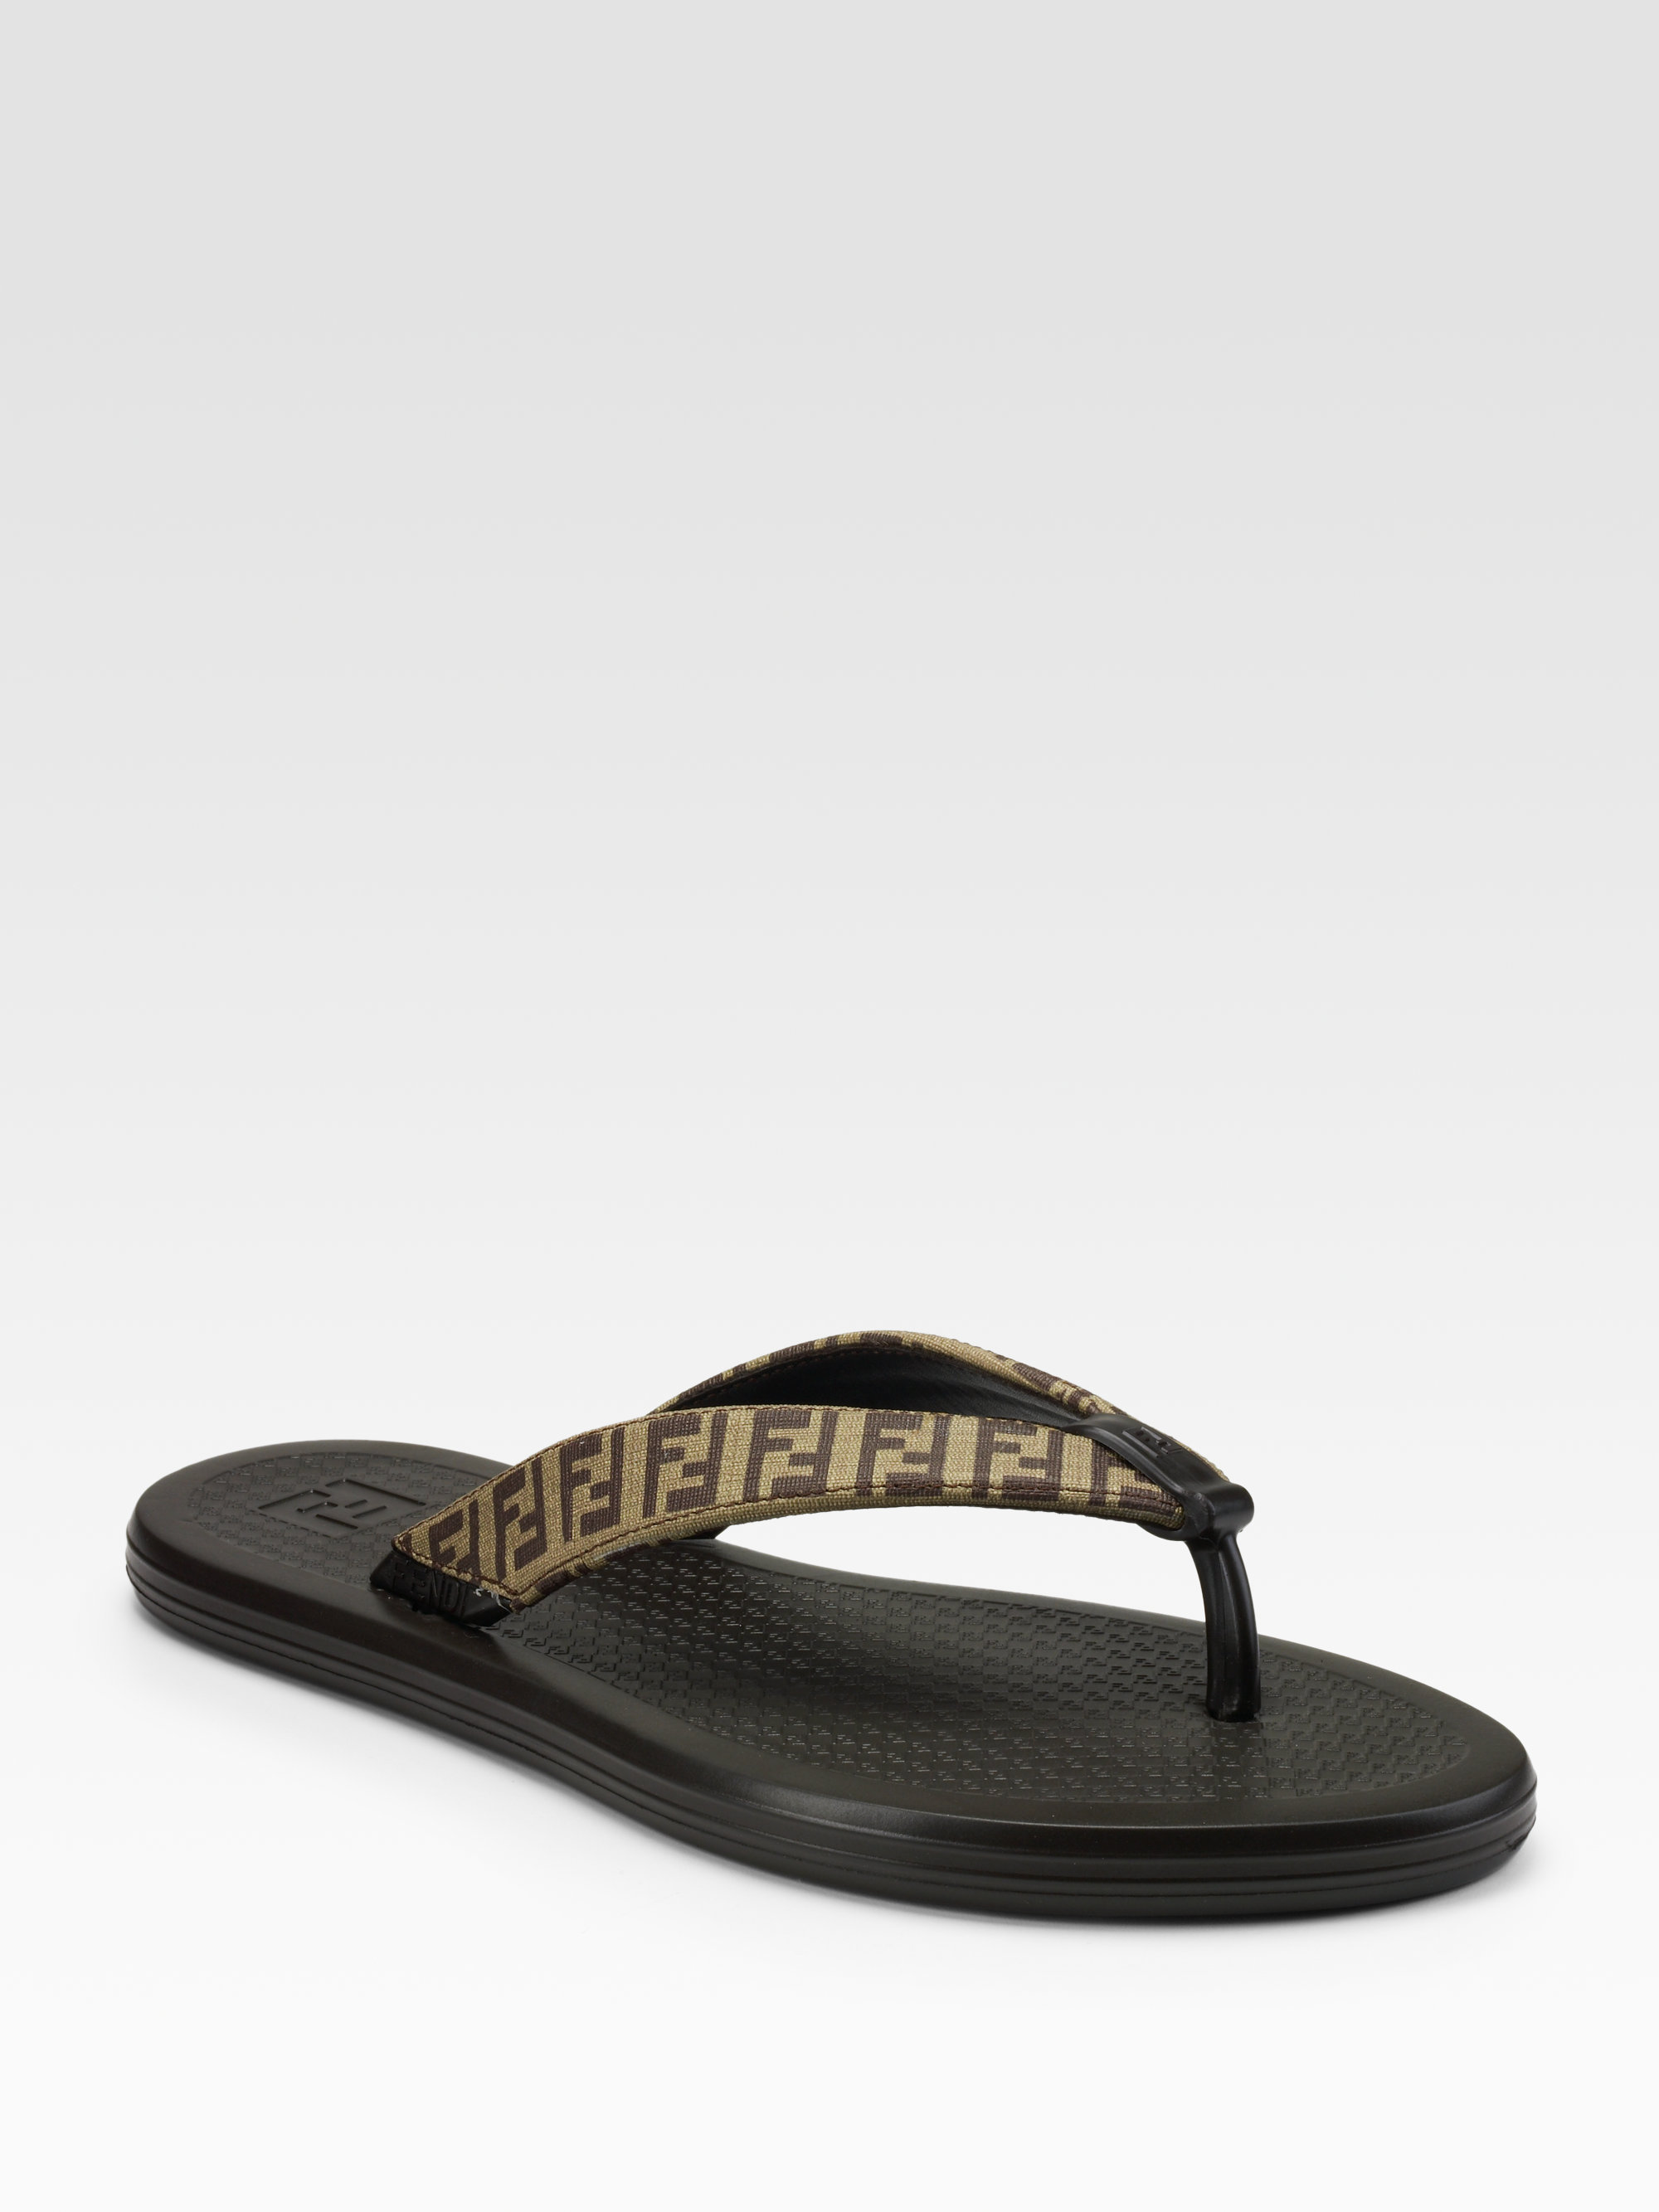 Fendi Fiji Flipflops In Brown For Men Mahogany Lyst